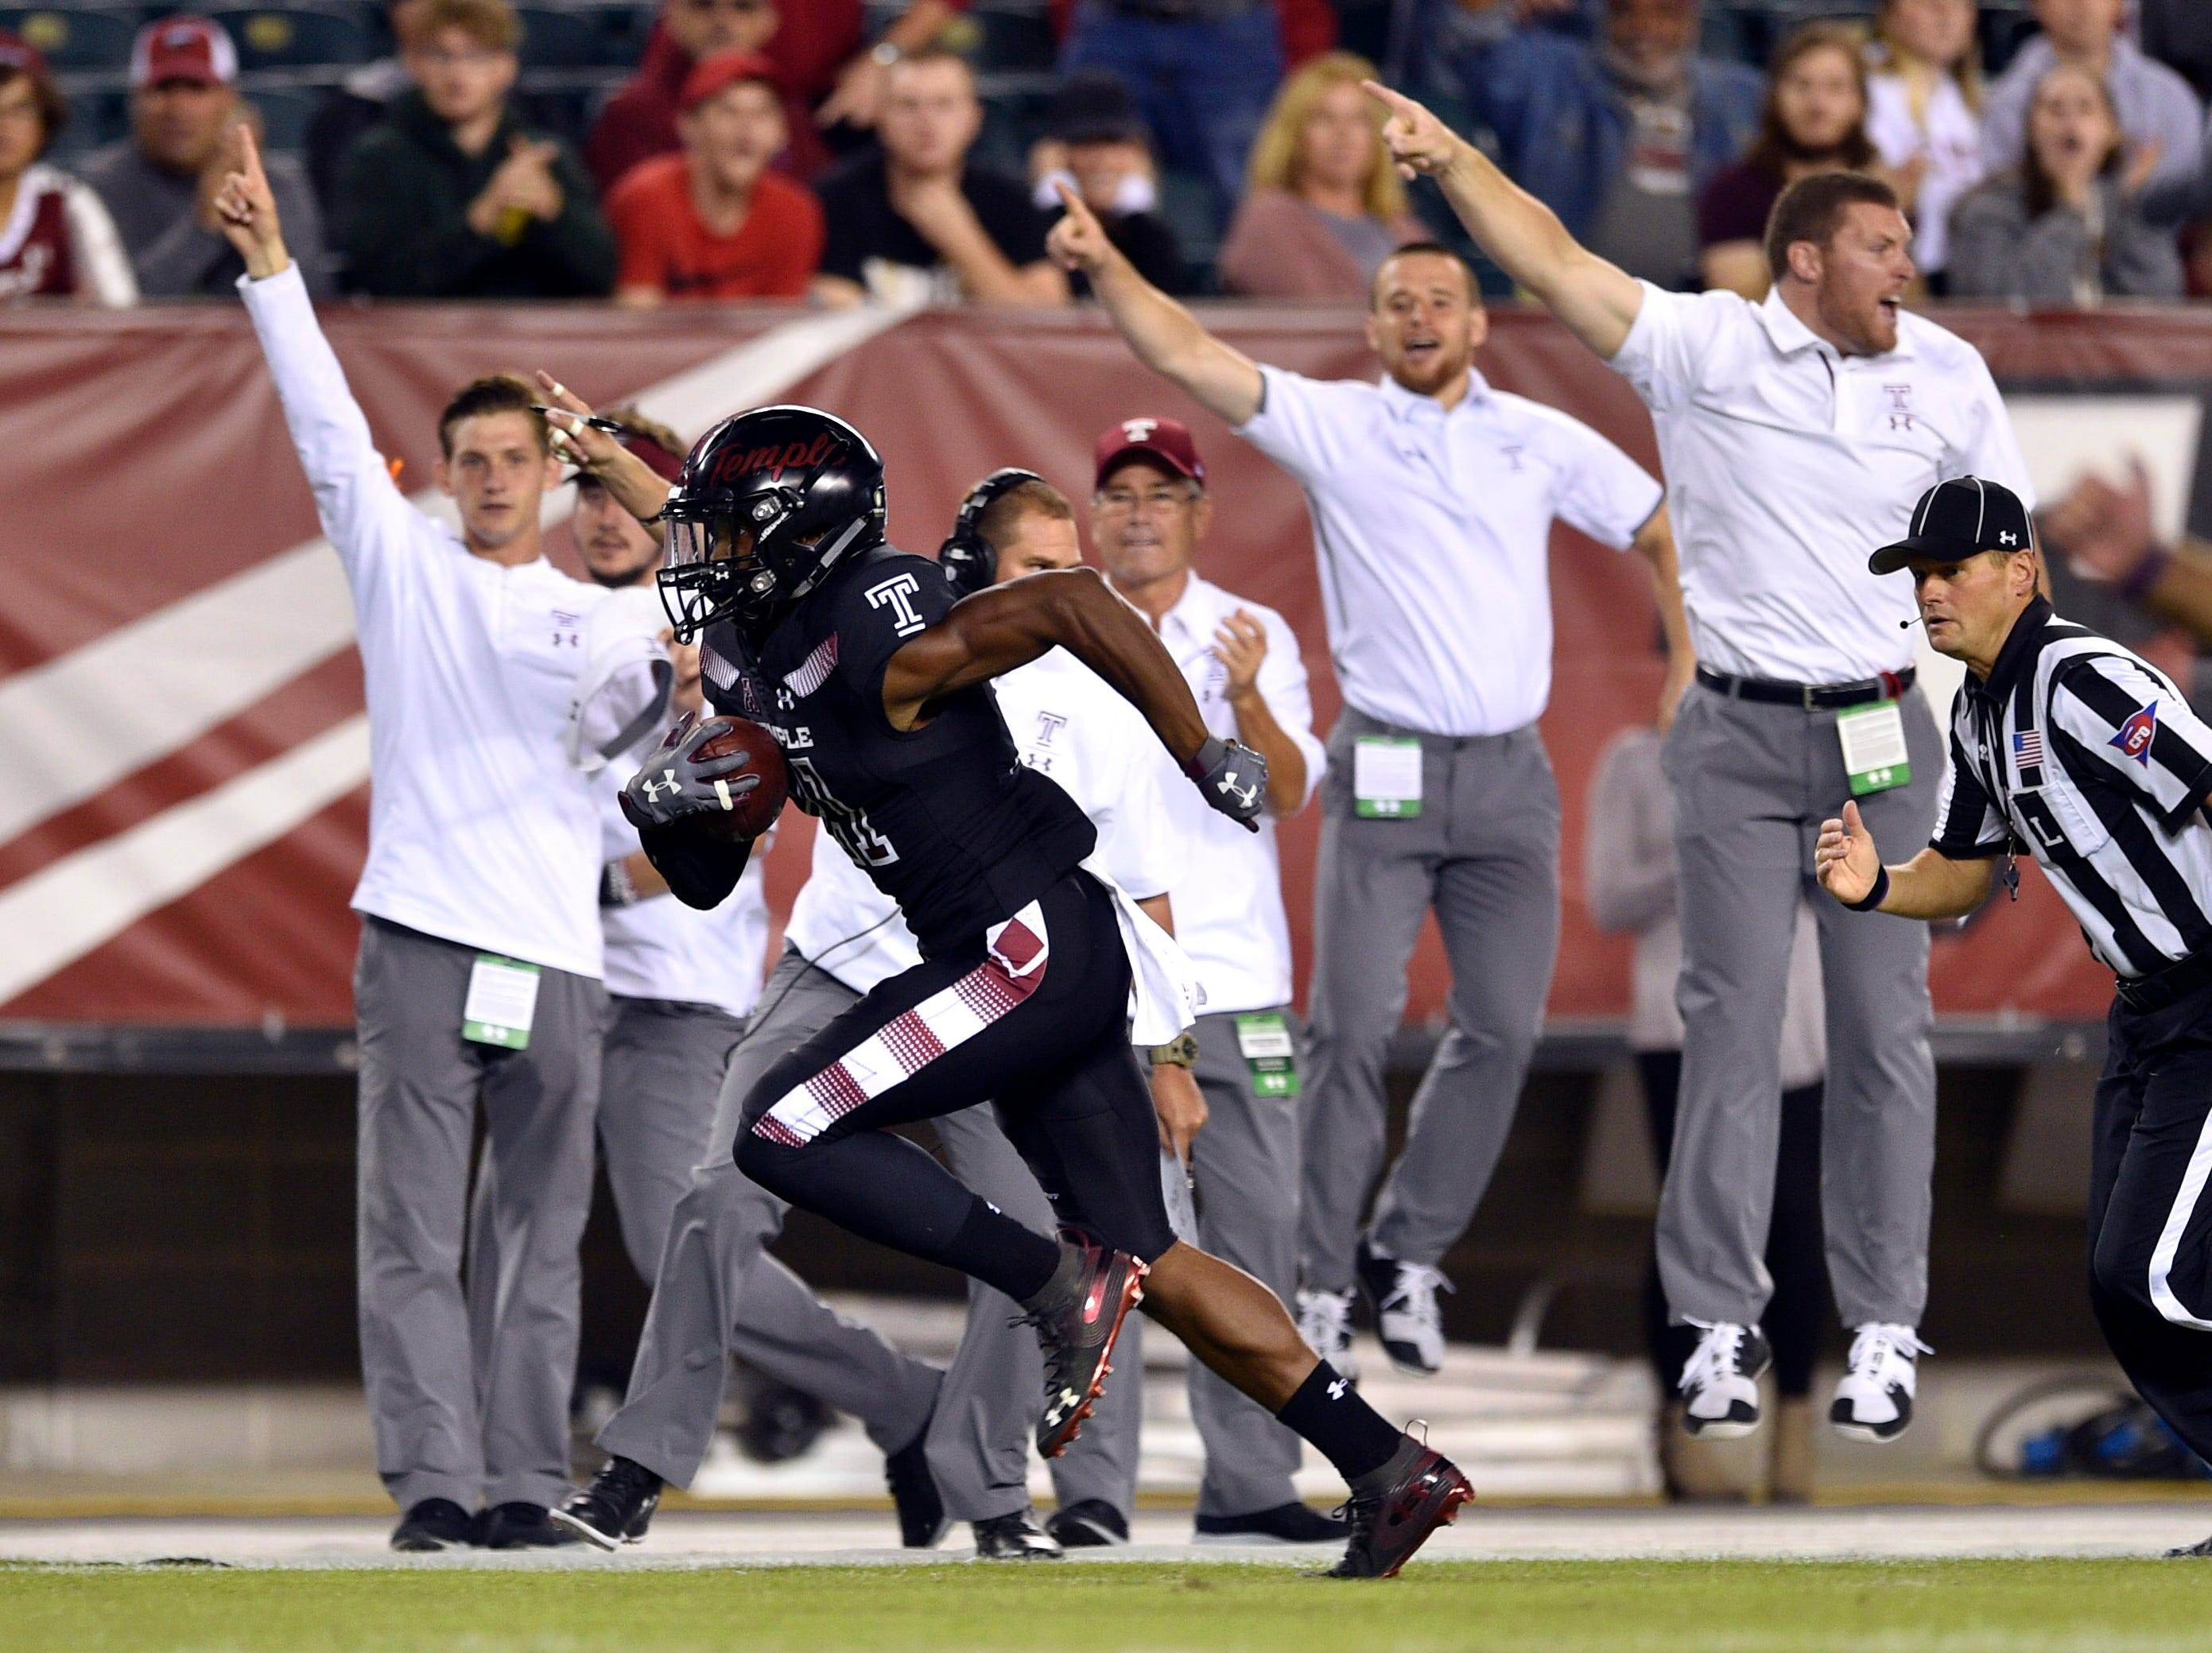 Temple Owls cornerback Ty Mason (21) returns an interception for a touchdown during the first quarter against the Tulsa Golden Hurricane at Lincoln Financial Field.